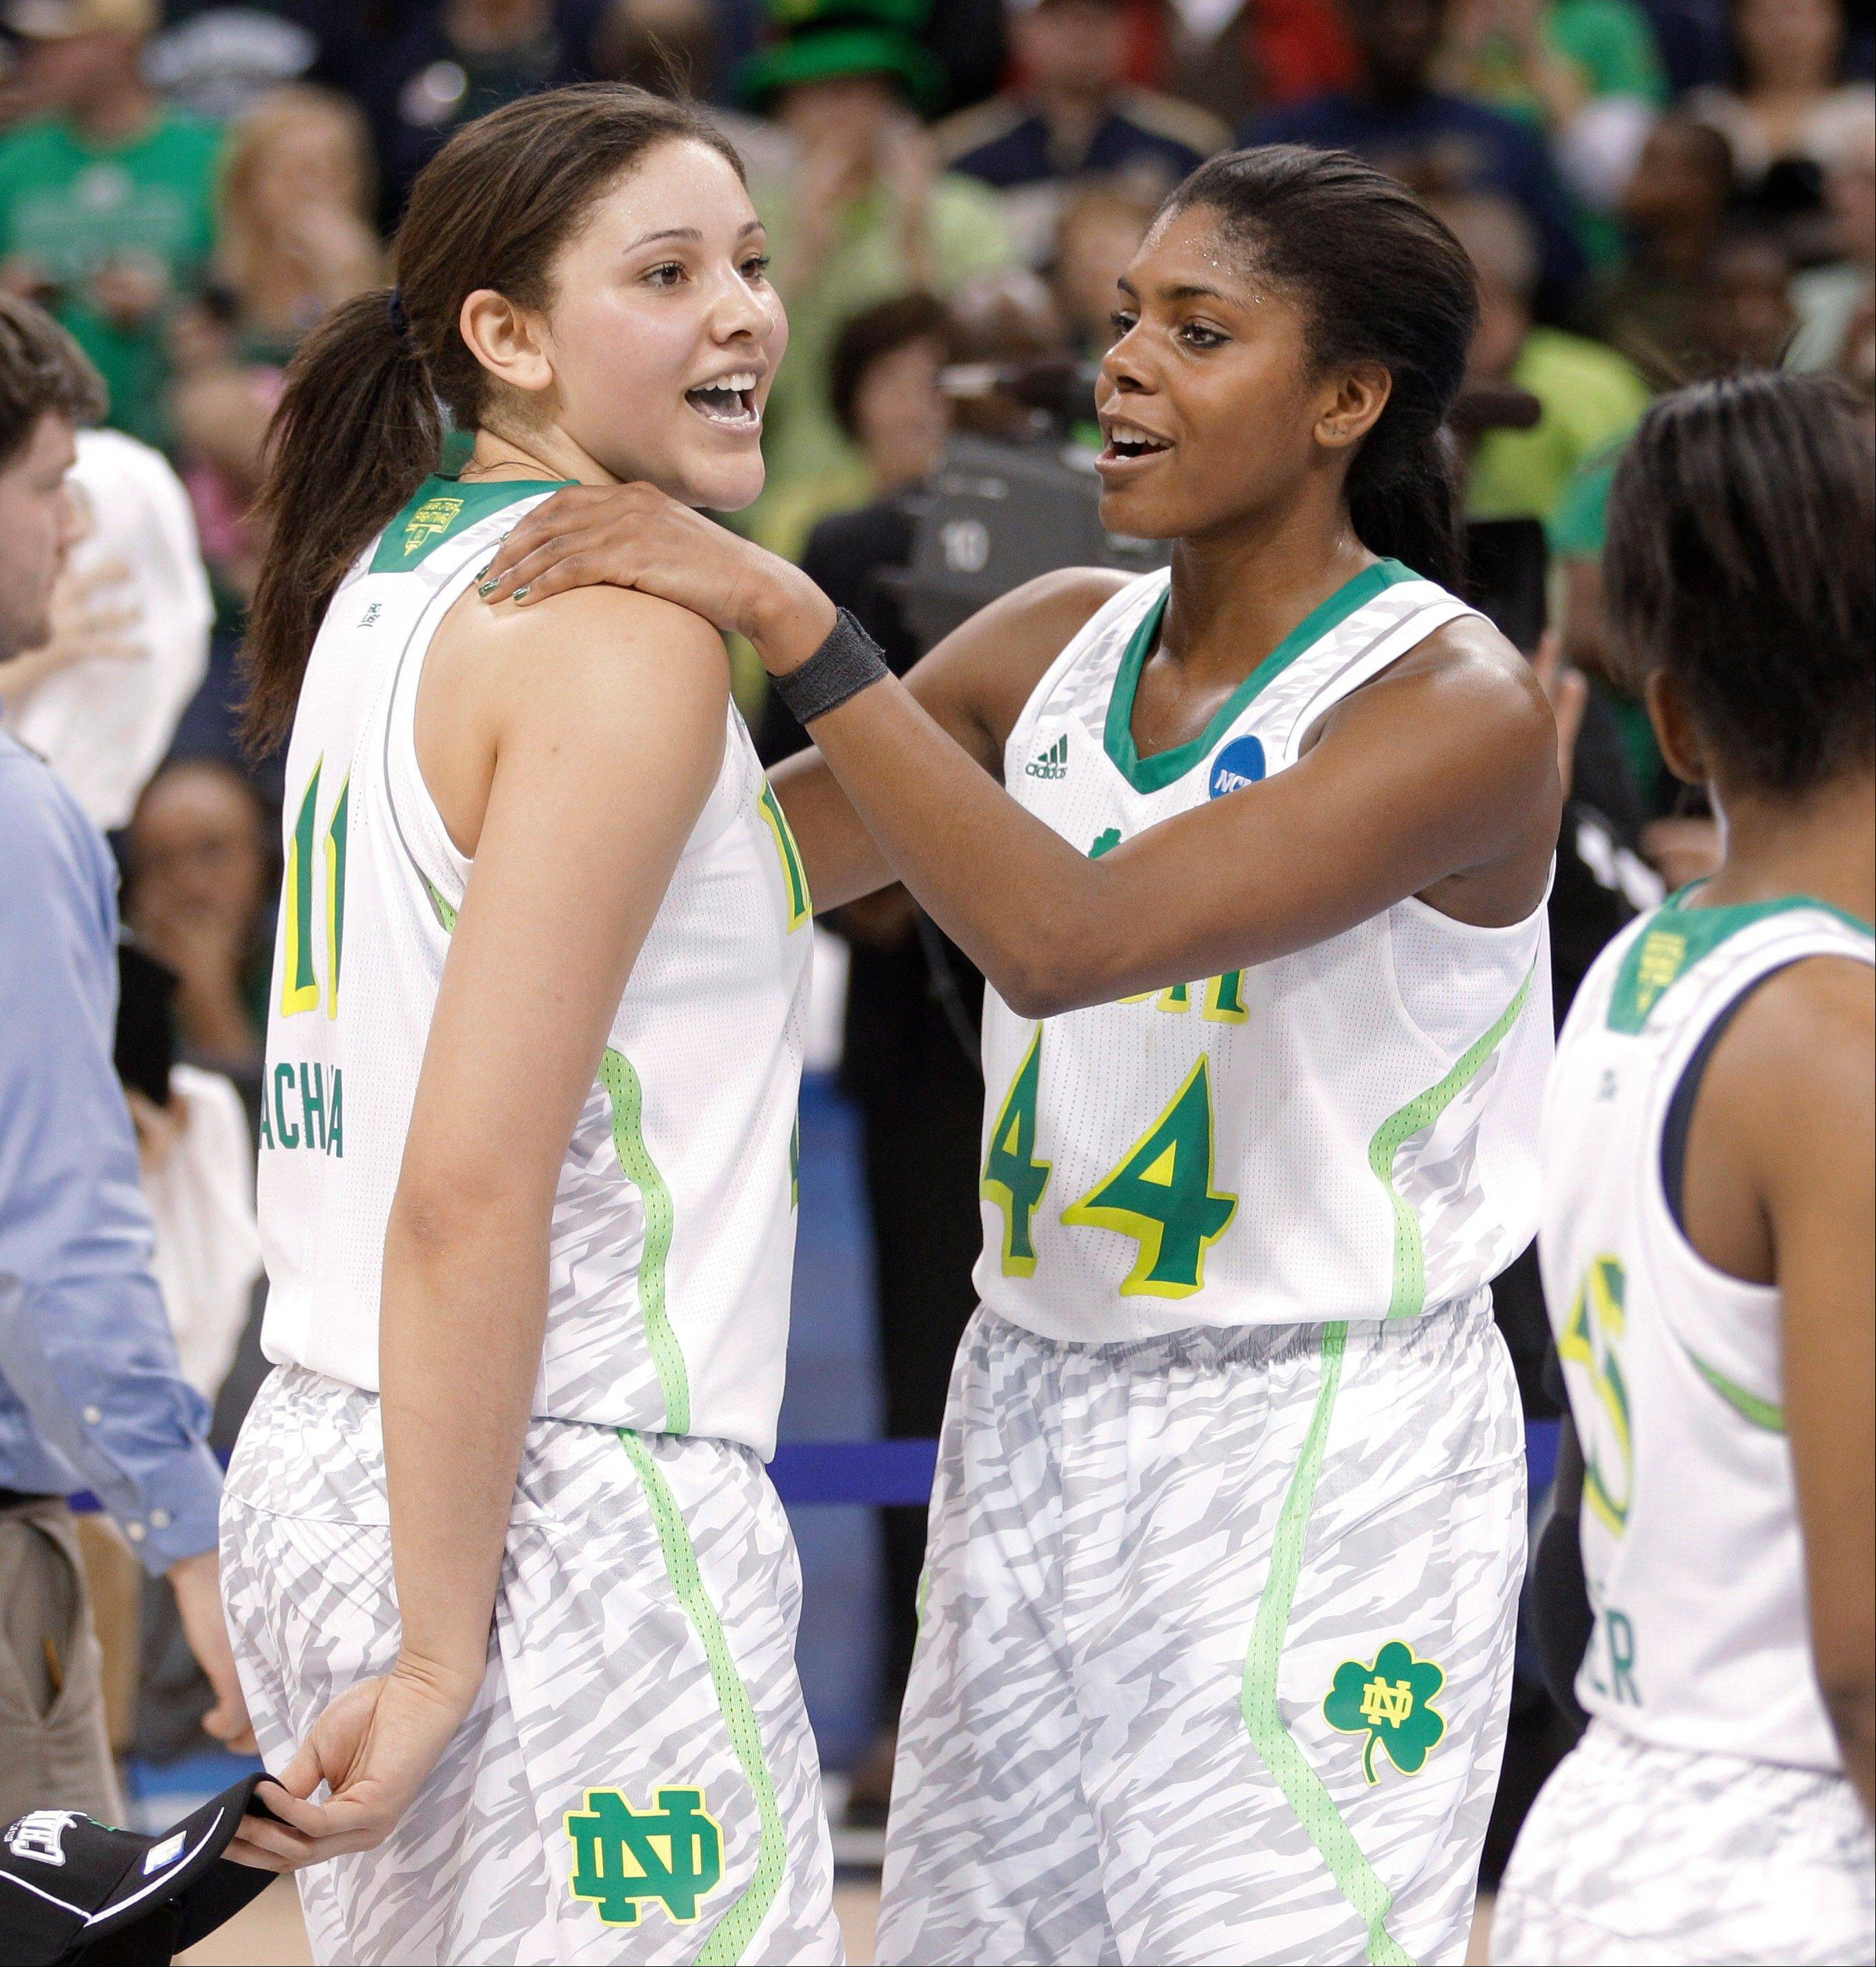 Notre Dame forwards Natalie Achonwa (11) and Ariel Braker (44) celebrate Notre Dame's win over Duke at the regional final of the NCAA women's college basketball tournament Tuesday, April 2, 2013, in Norfolk, Va. Notre Dame won 87-76. (AP Photo/Steve Helber)